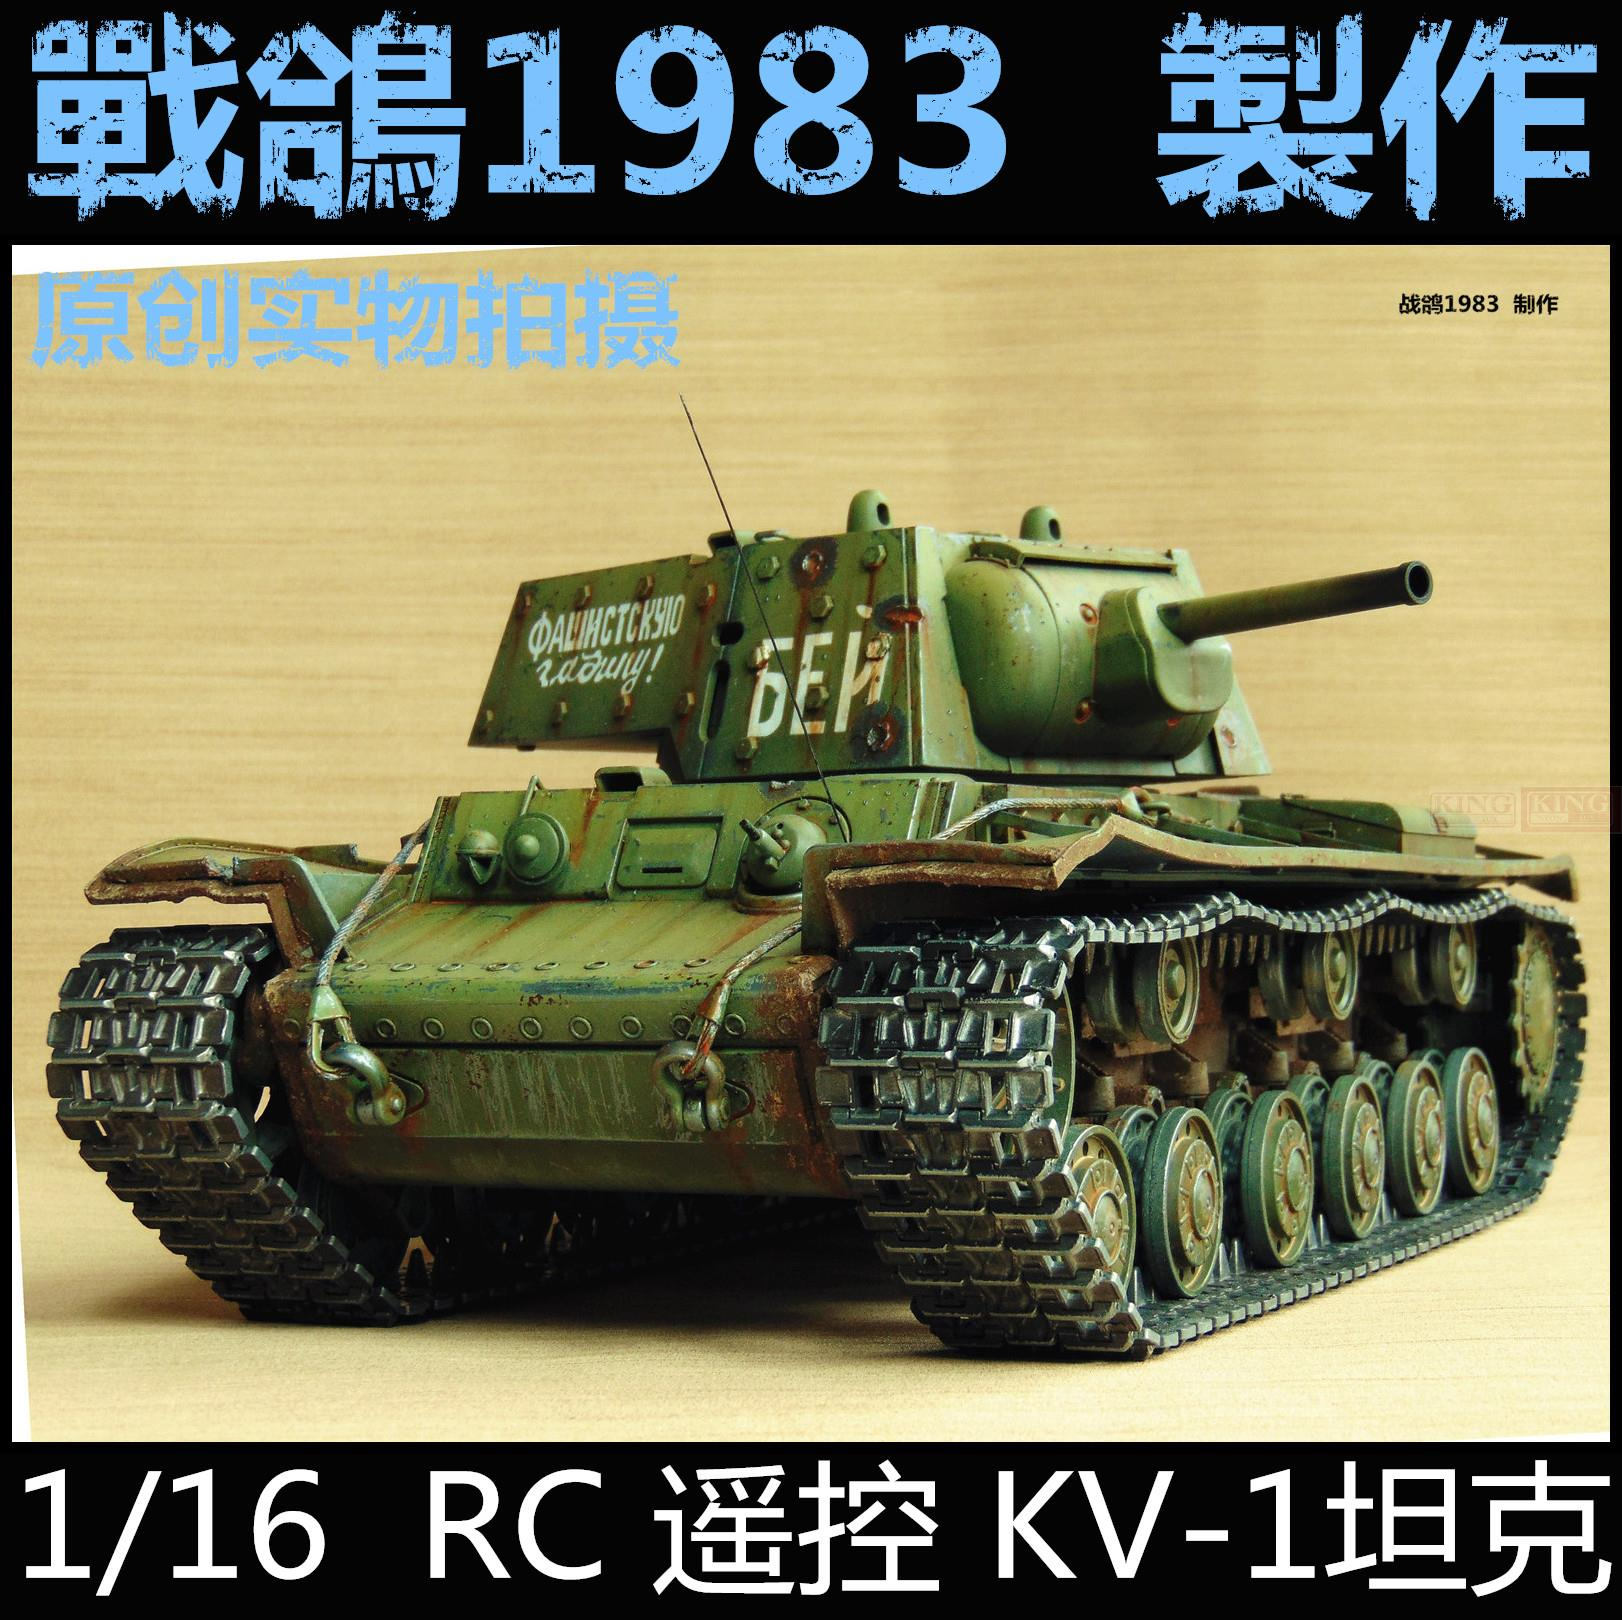 KNL HOBBY Heng Long 1: 16  KV1 RC remote control tank model foundry heavy coating of paint to do the old upgrade knl hobby voyager model pe35418 m1a1 tusk1 ubilan